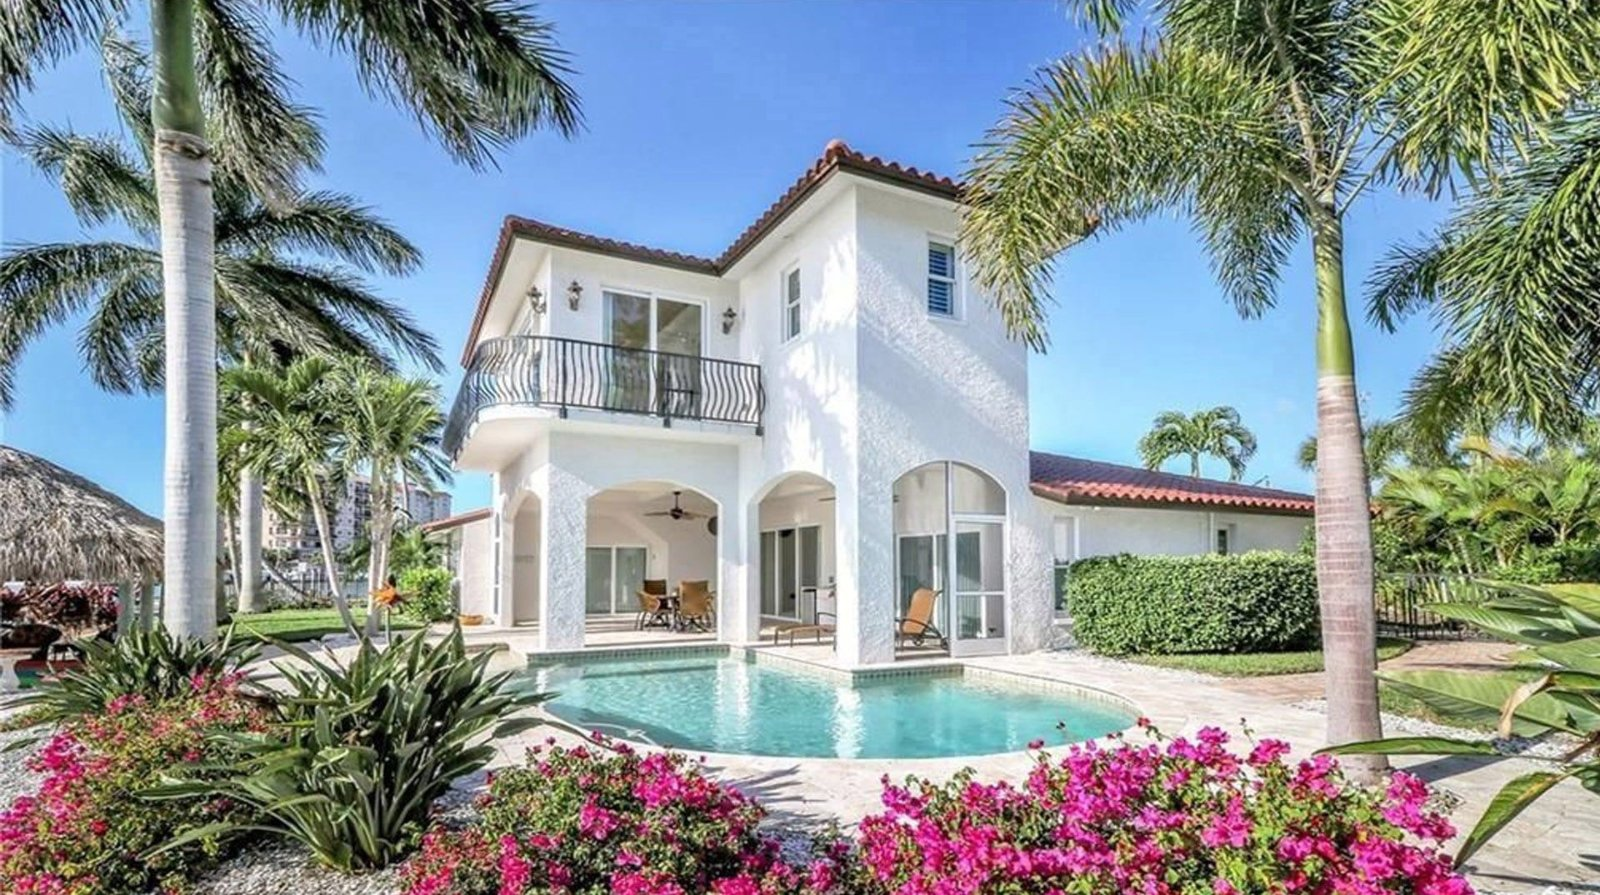 fort myers second mortgage, fort myers second mortgage rates, fort myers second mortgage broker, fort myers second mortgage lender, mortgage fort myers, fort myers second mortgage,